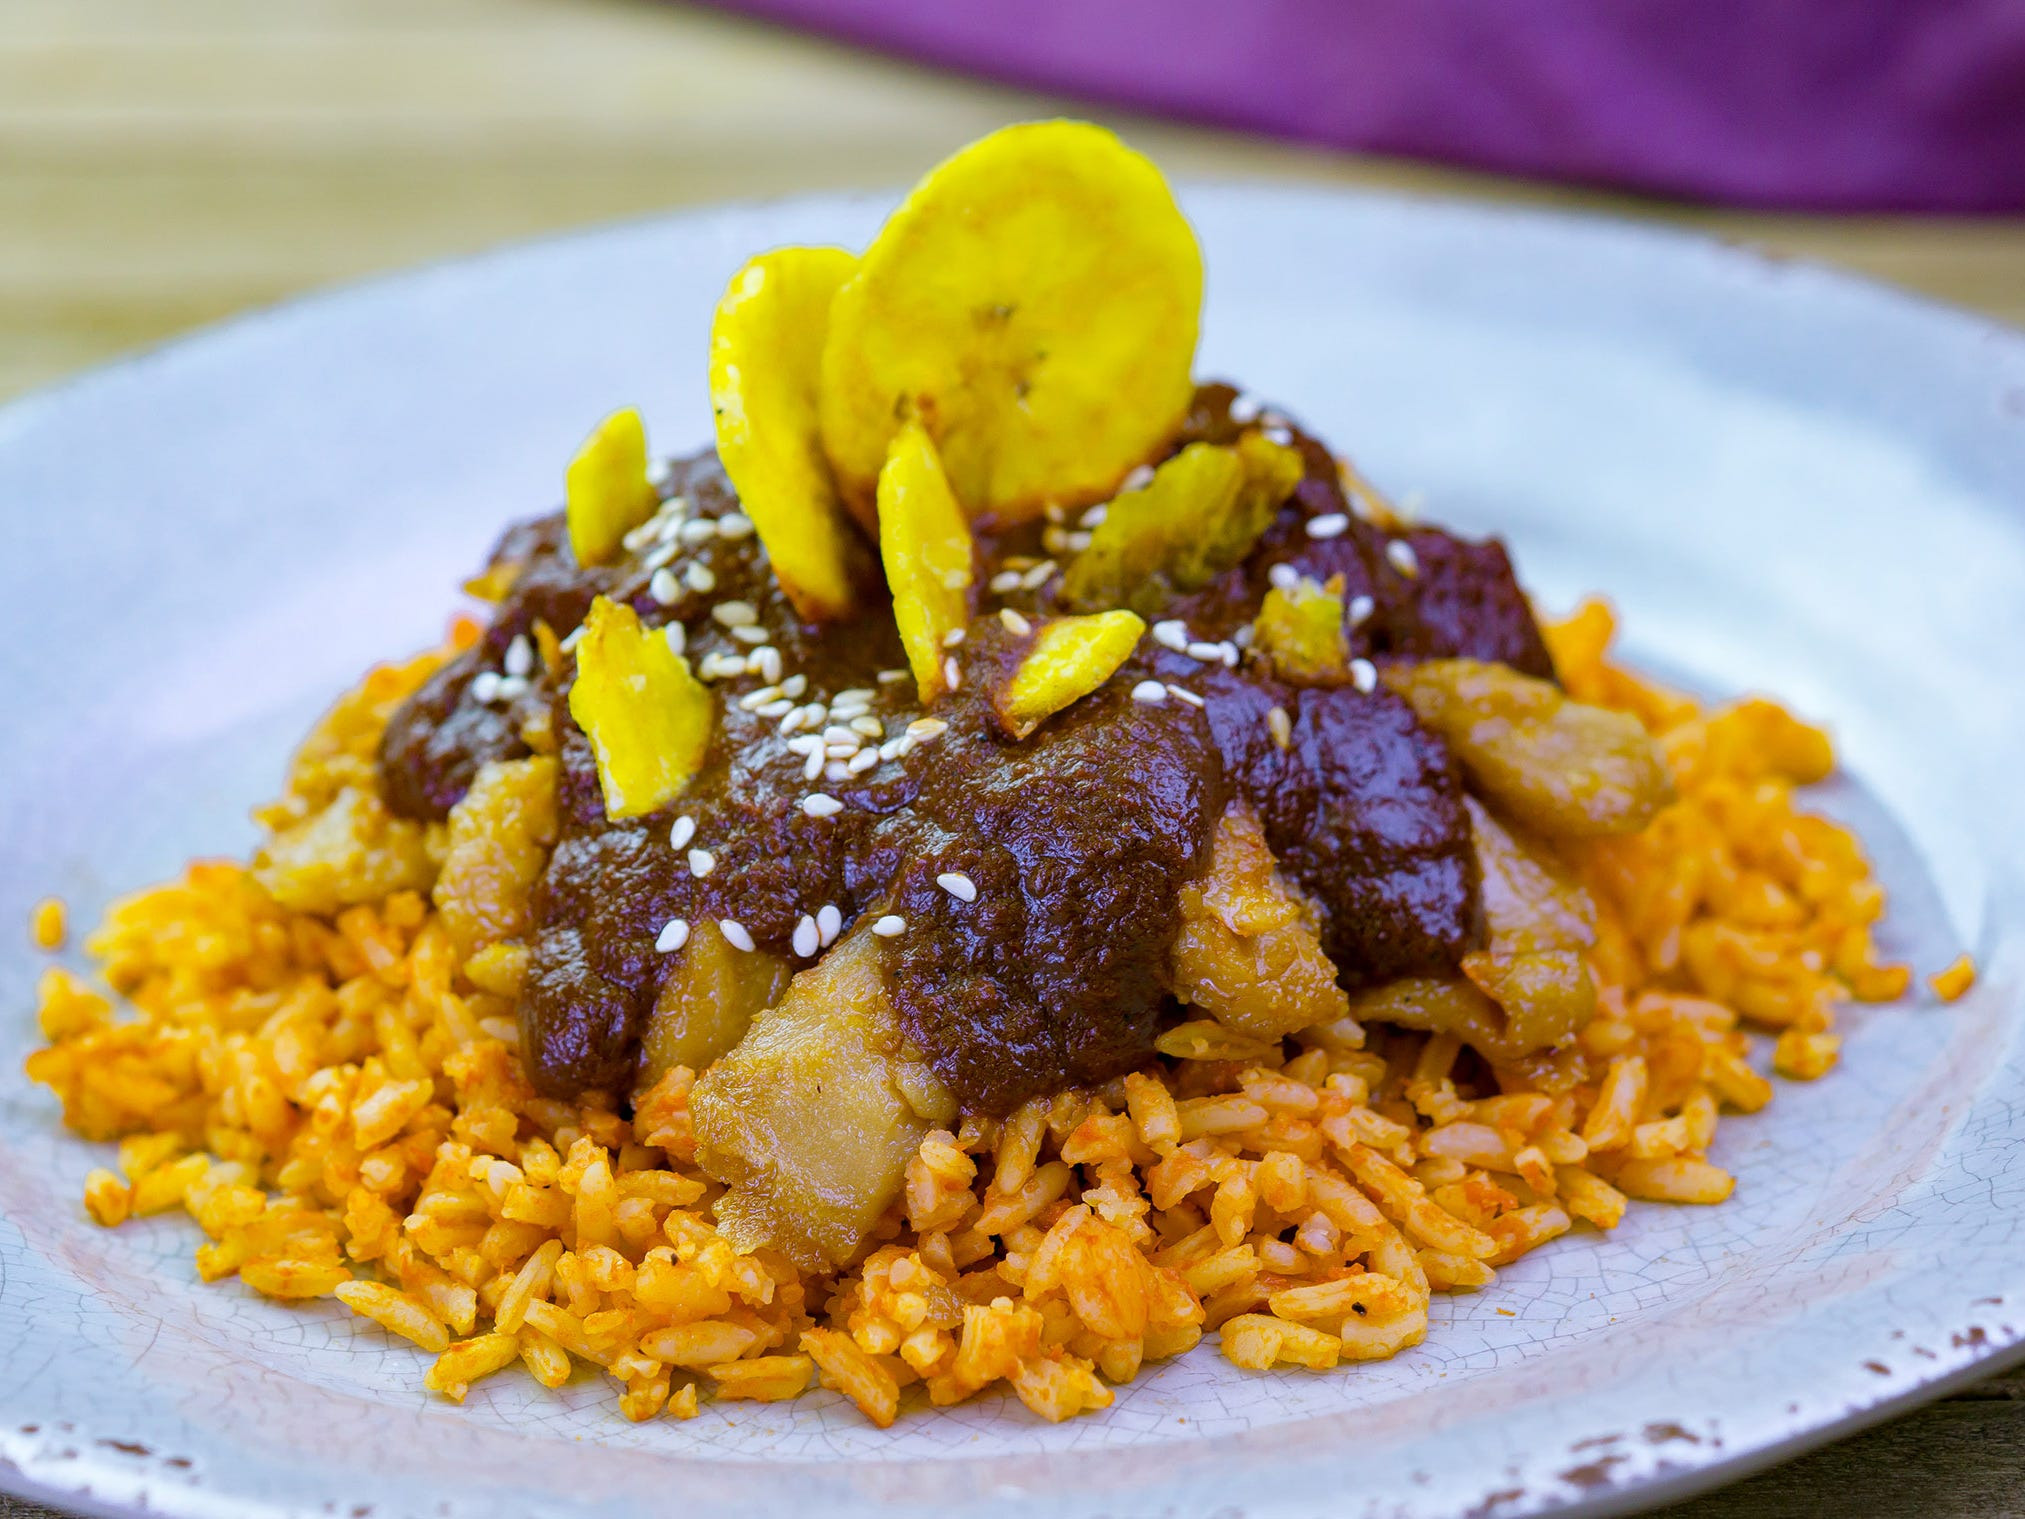 """Chicken-less"" mole with Spanish rice found at the A Twist on Tradition marketplace during Disney Festival of Holidays at Disney California Adventure Park. Guests can stroll through the Festive Foods Marketplace and enjoy a variety of holiday comfort dishes that span cultures and family traditions."